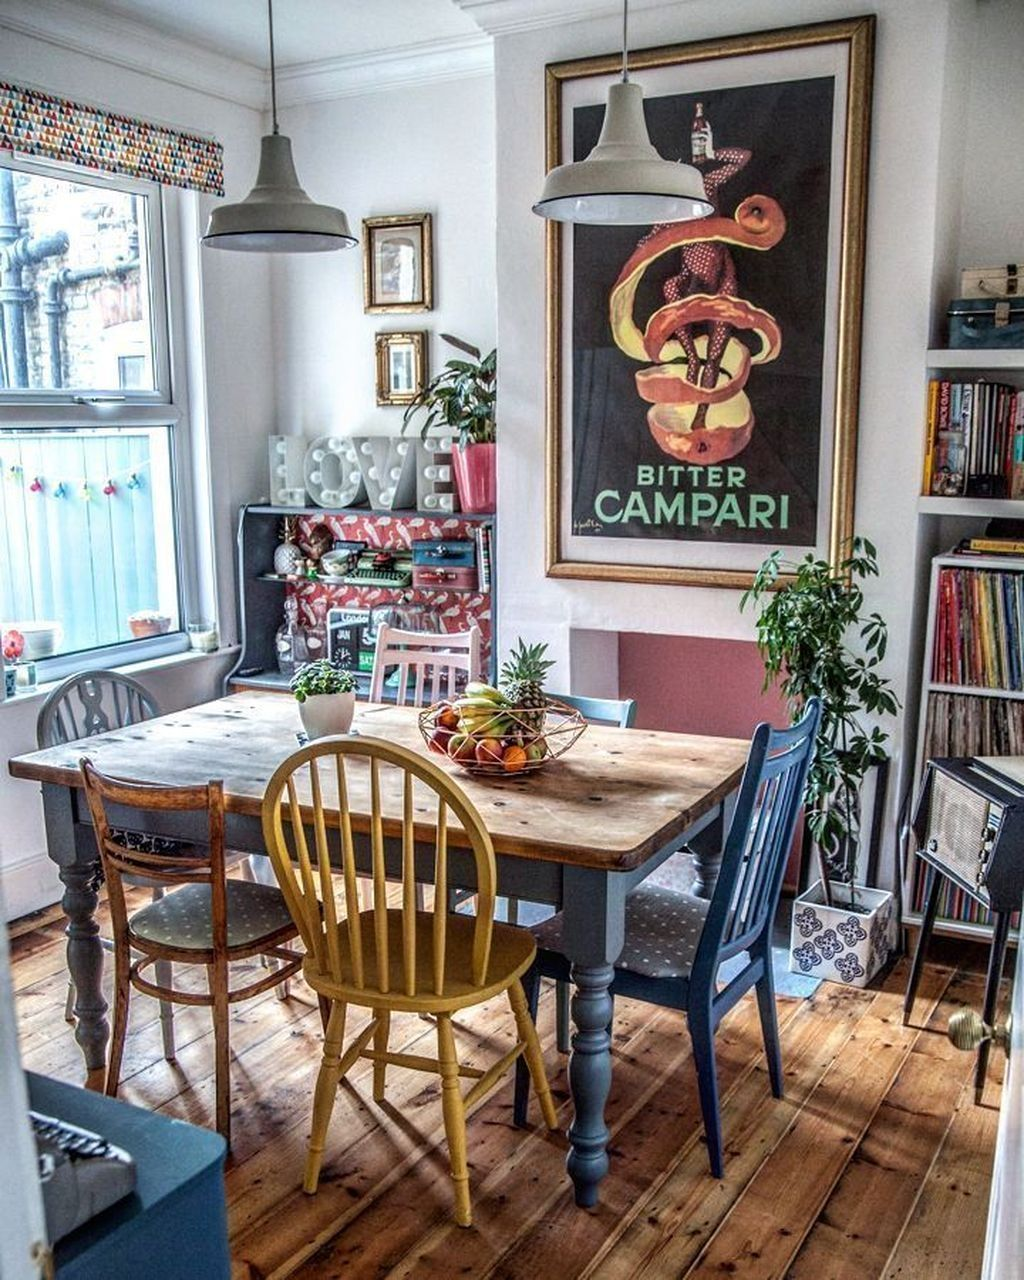 20+ Unordinary Dining Room Design Ideas With Bohemian